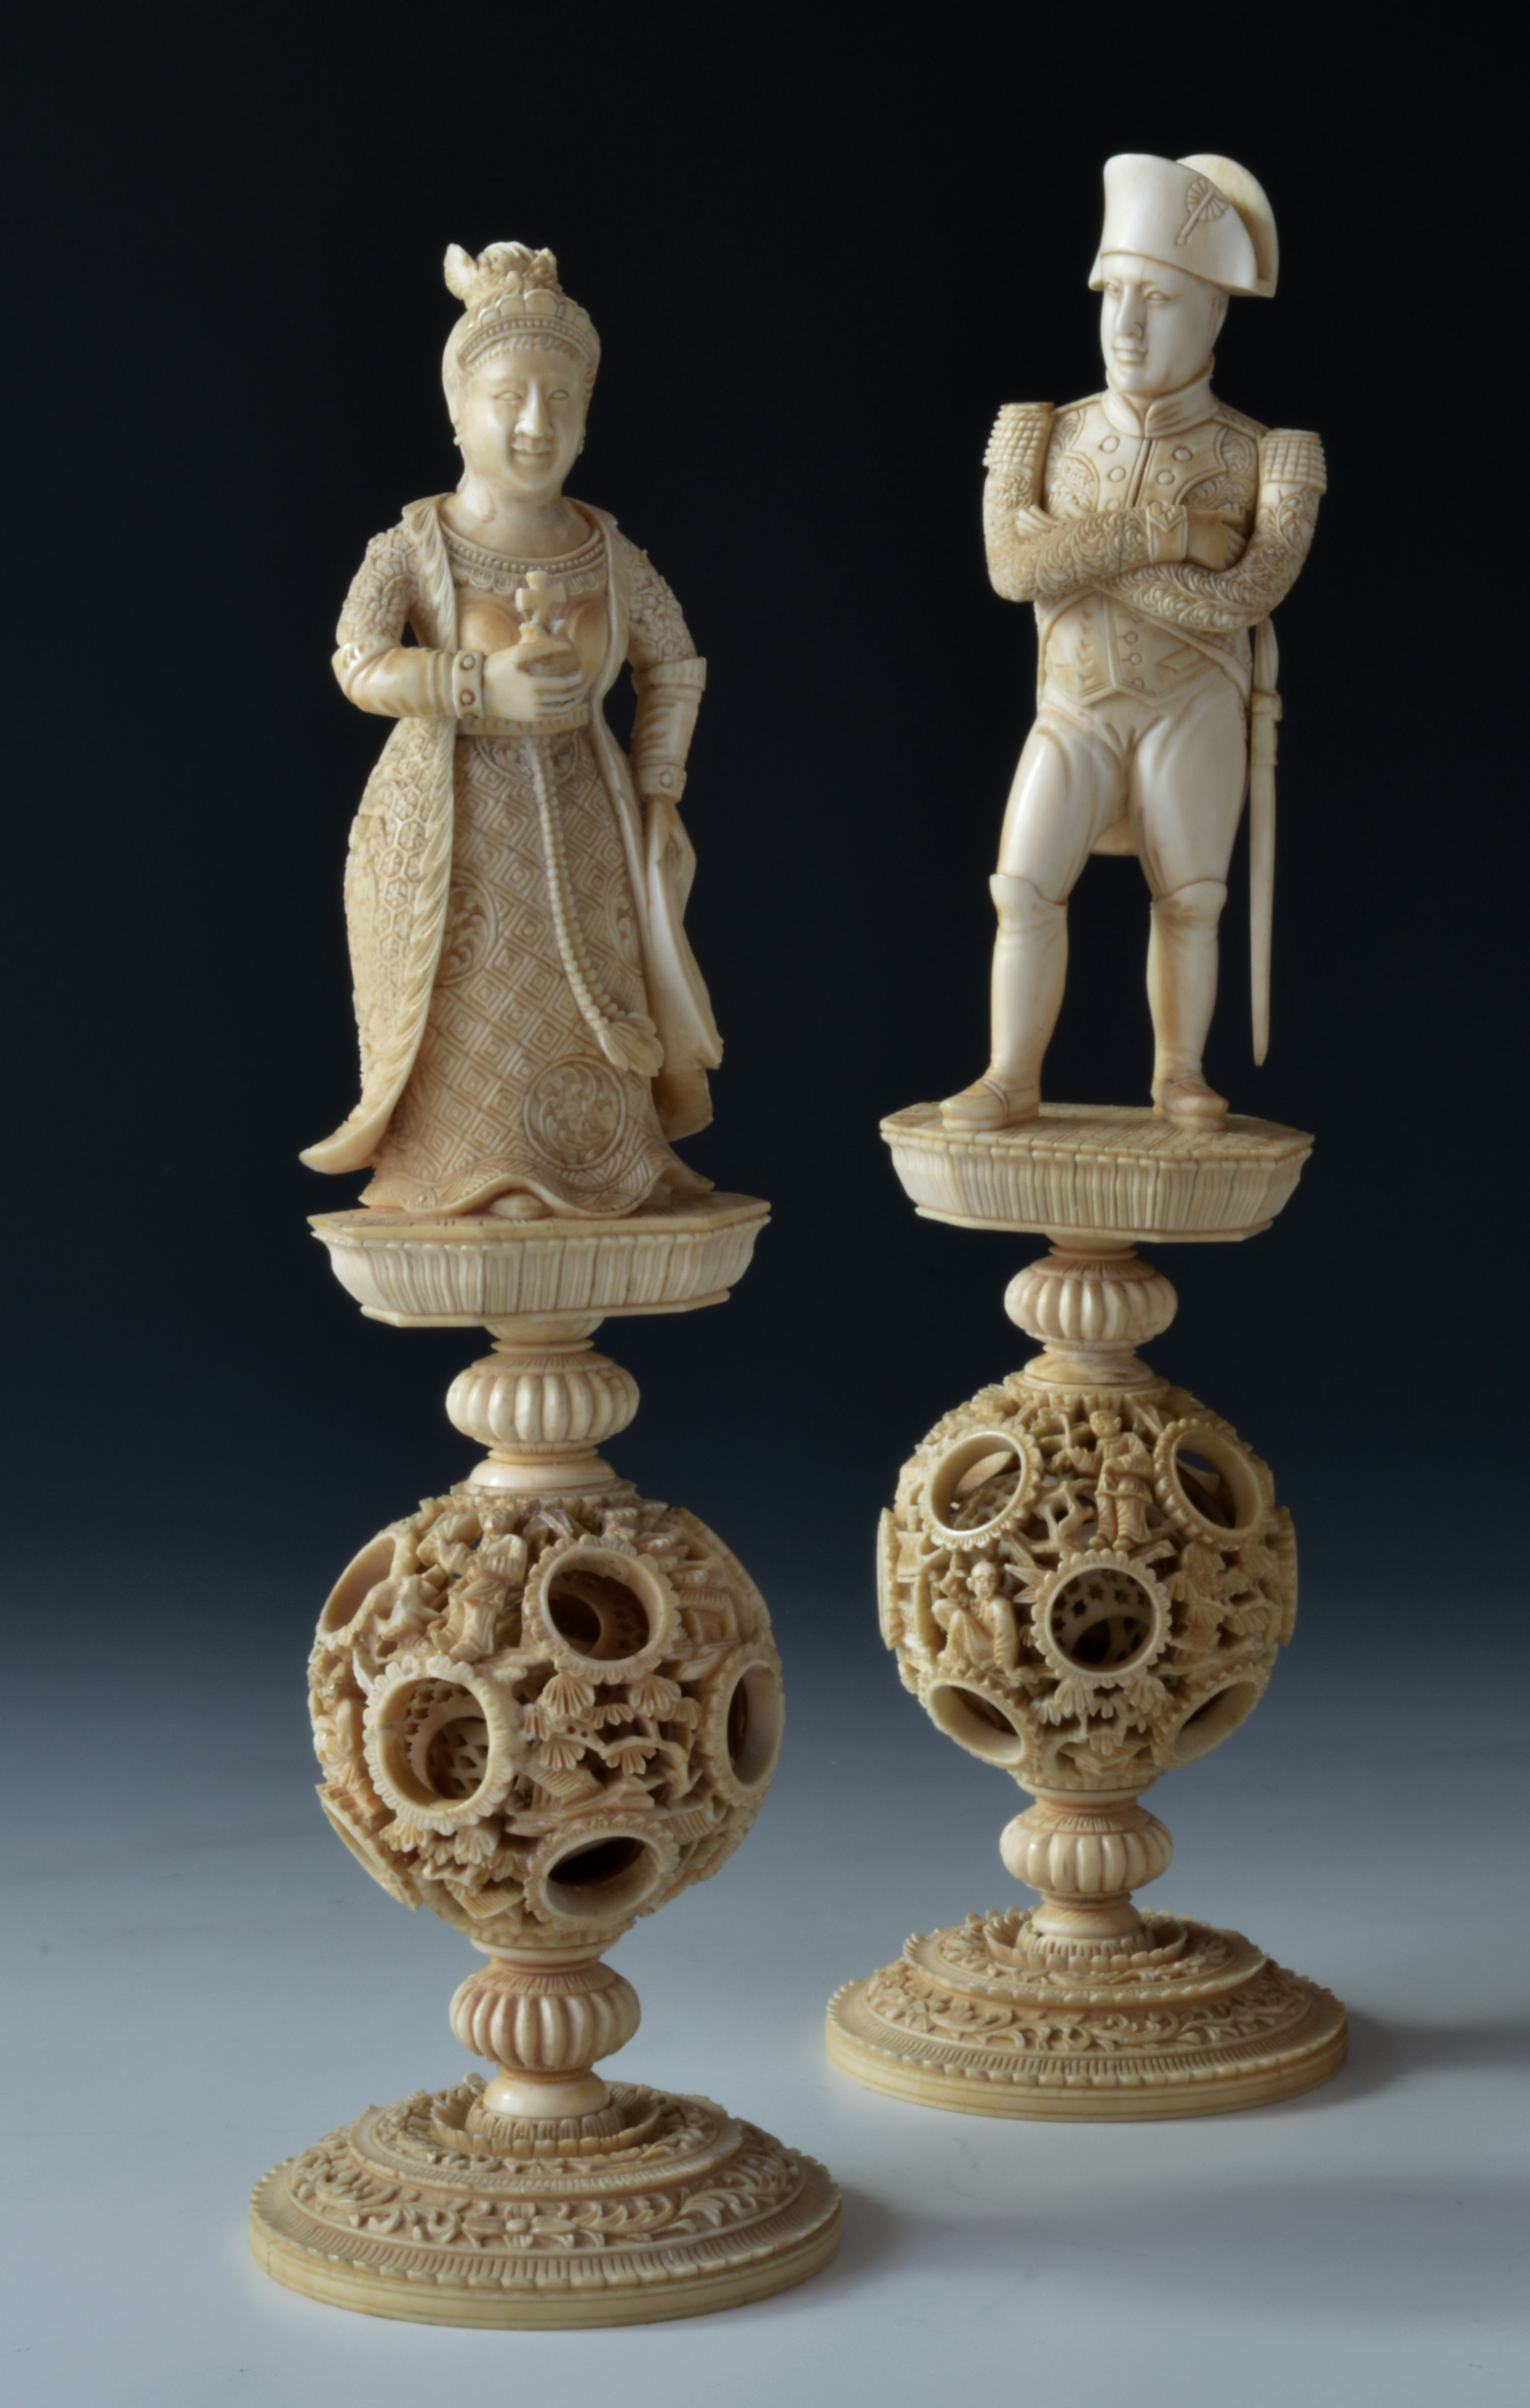 A very fine and rare early 19th century chinese ivory napoleon chess set richard gardner antiques - Collectible chess sets ...